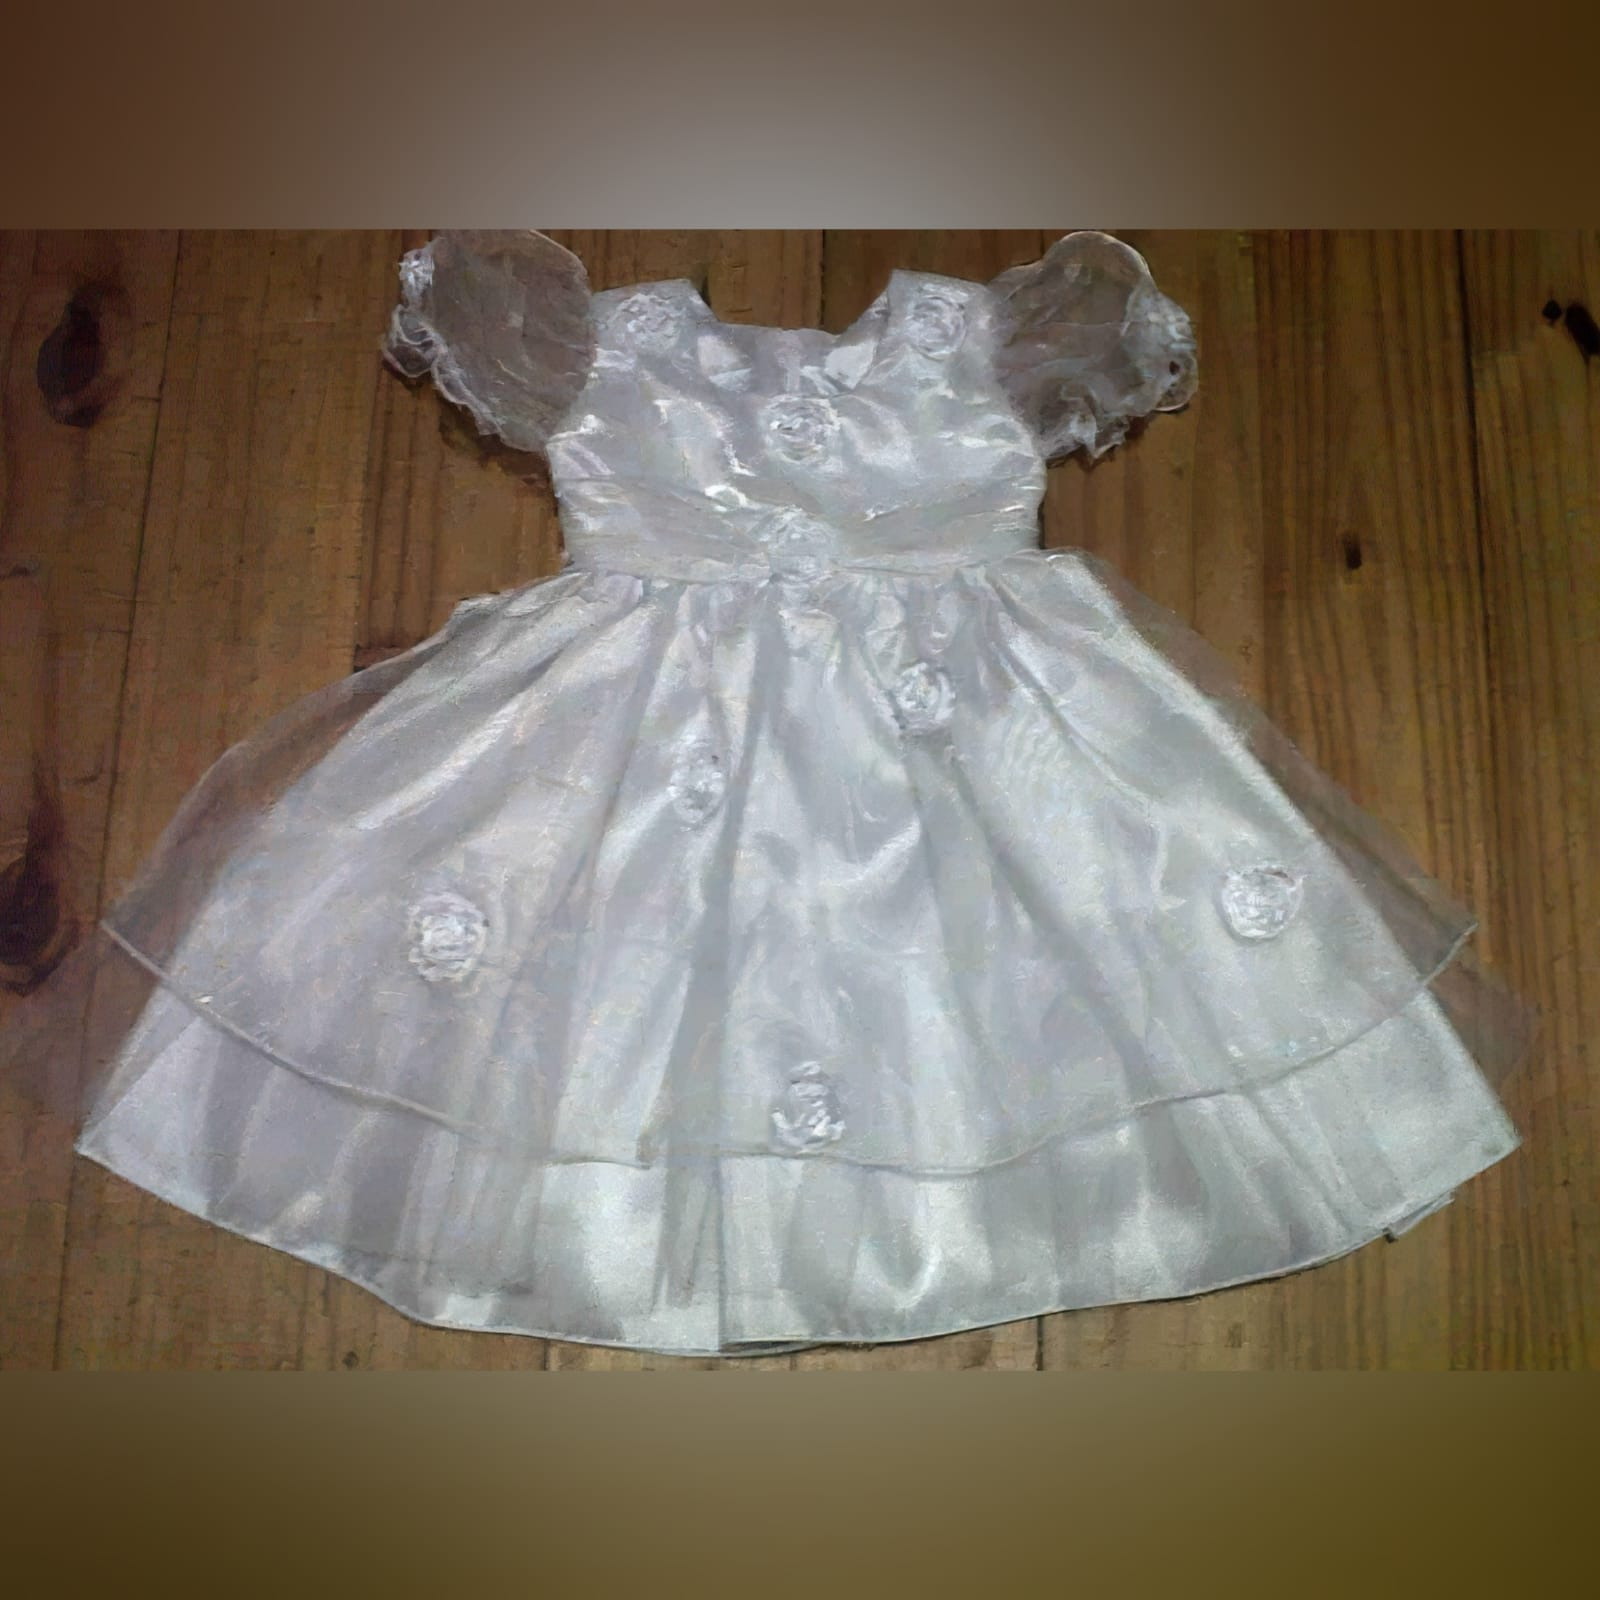 White baptism dress in crushed organza 1 white baptism dress made in satin with a double layer of crushed organza, beaded flowers on the bodice with ribbon and short bubble sleeves.